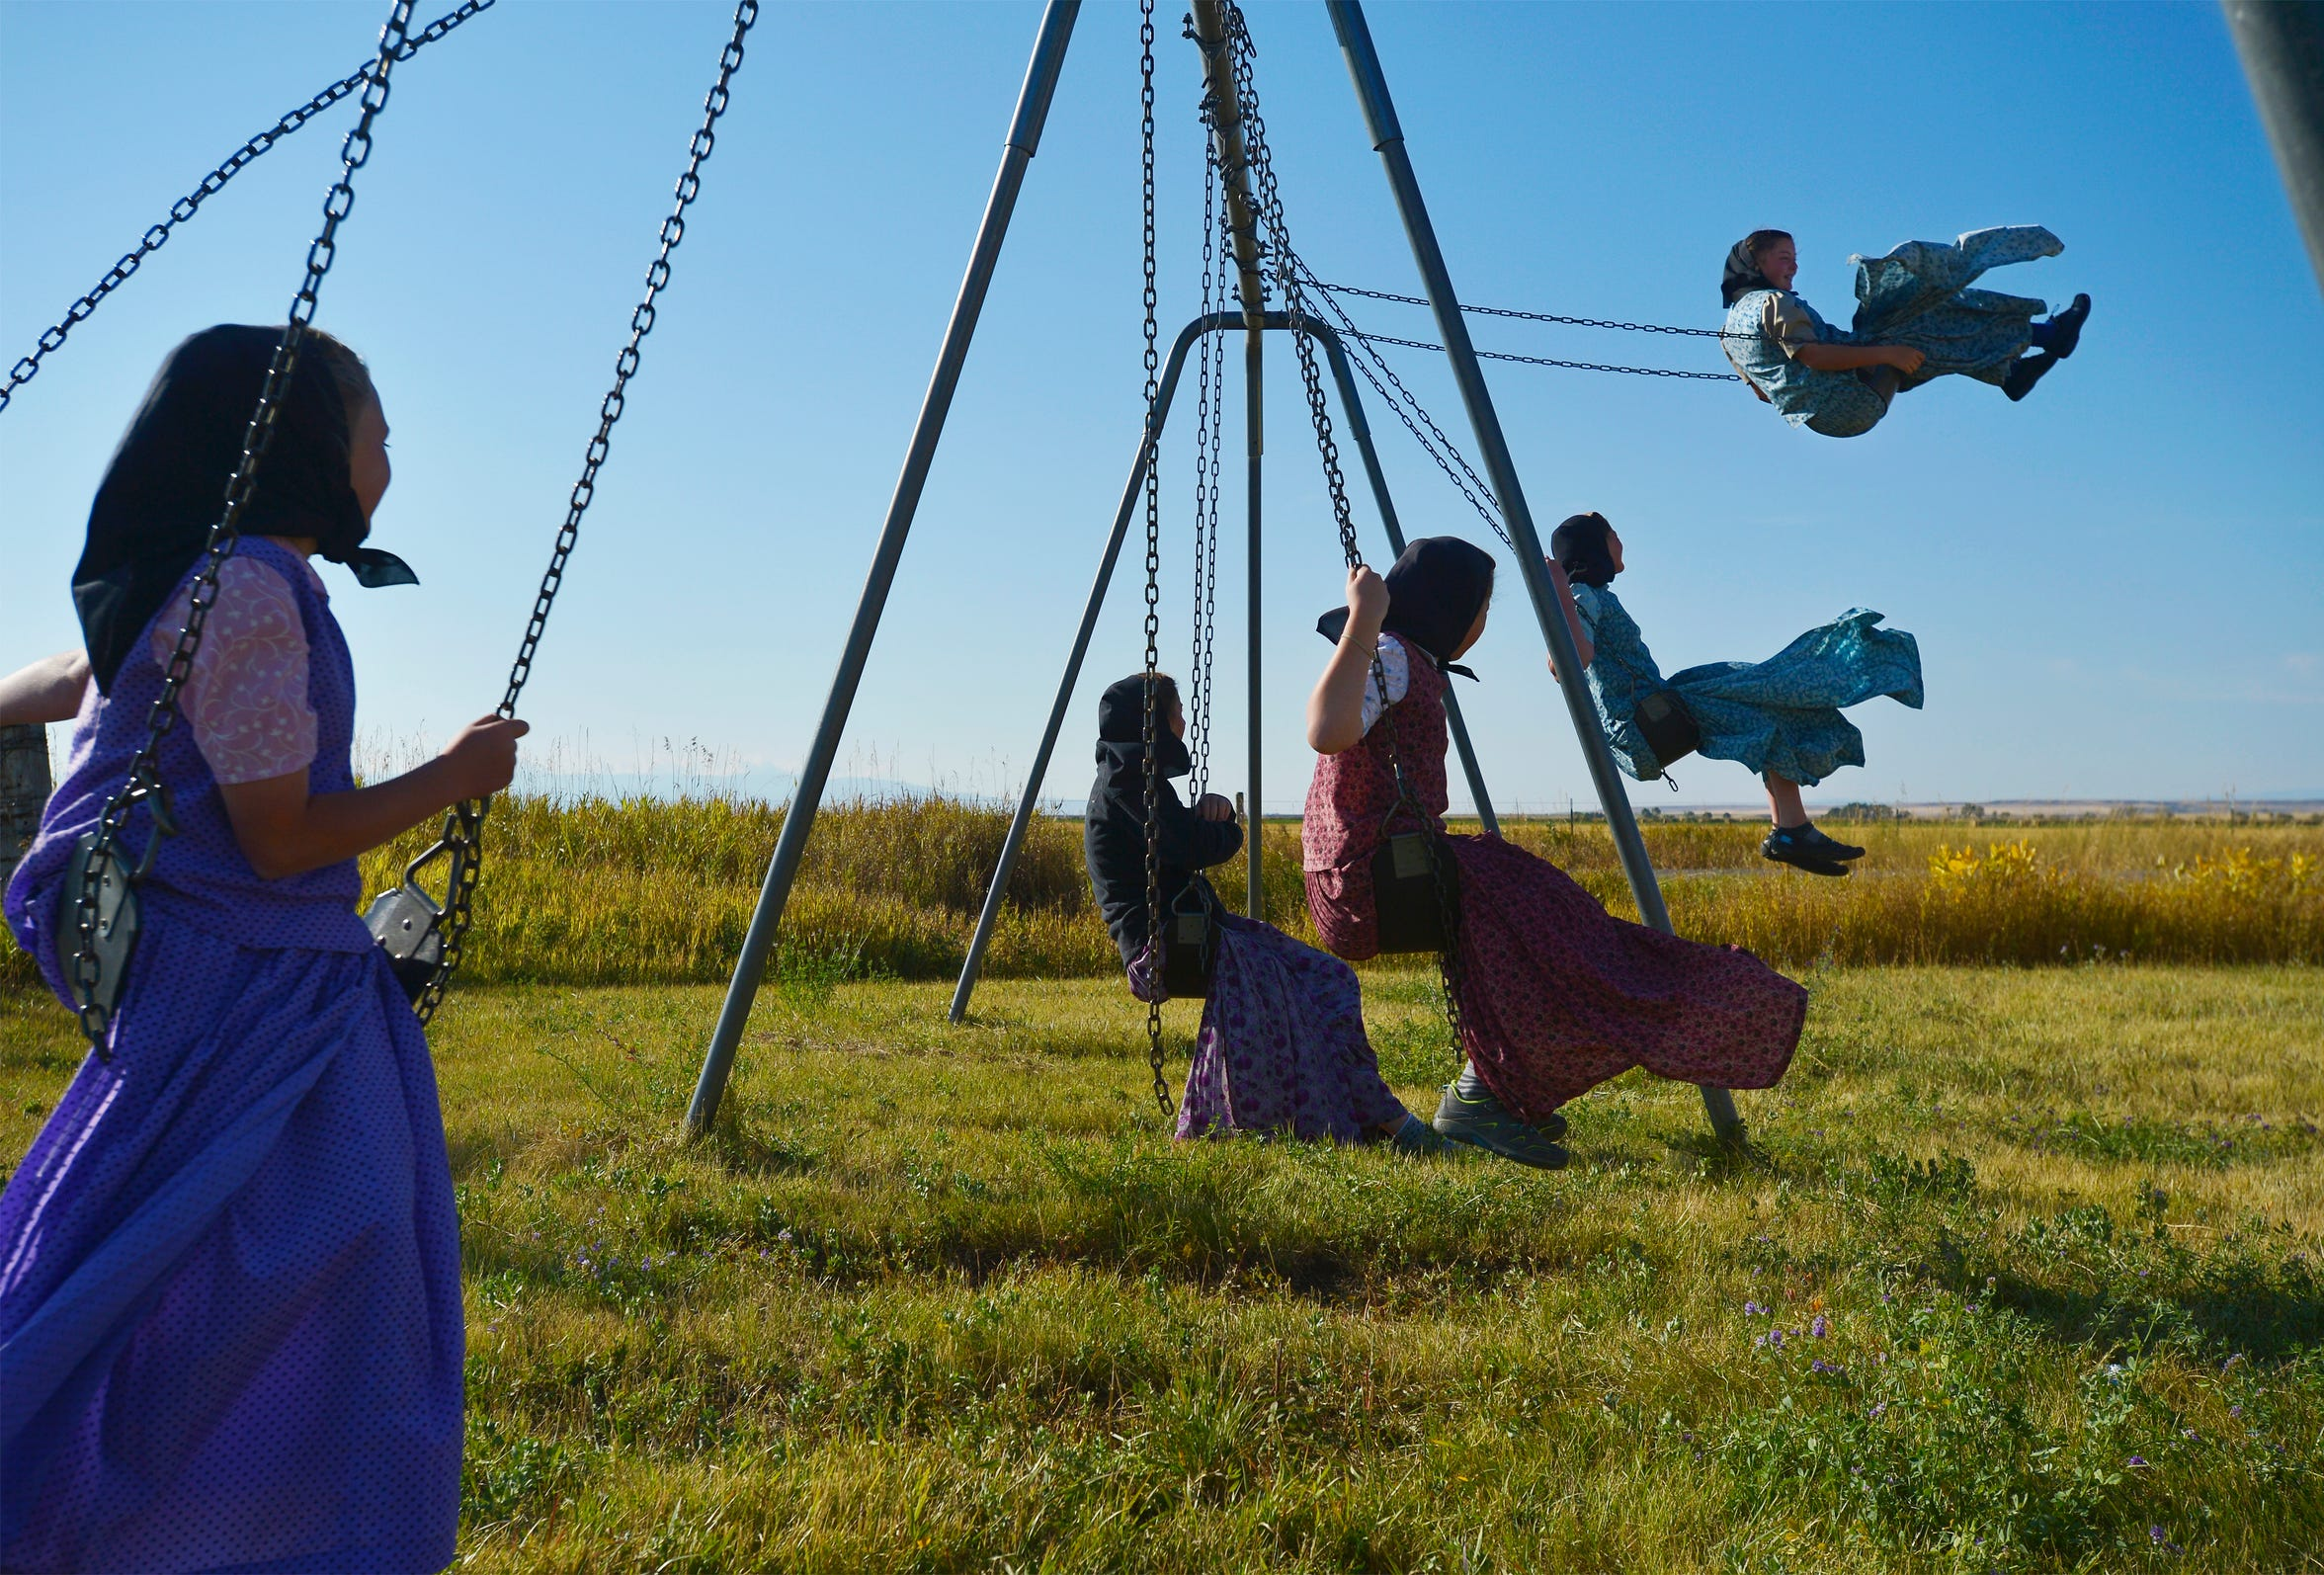 Swinging is a favorite recess activity for students in Traci Manseau's class on the Deerfield Hutterite Colony.